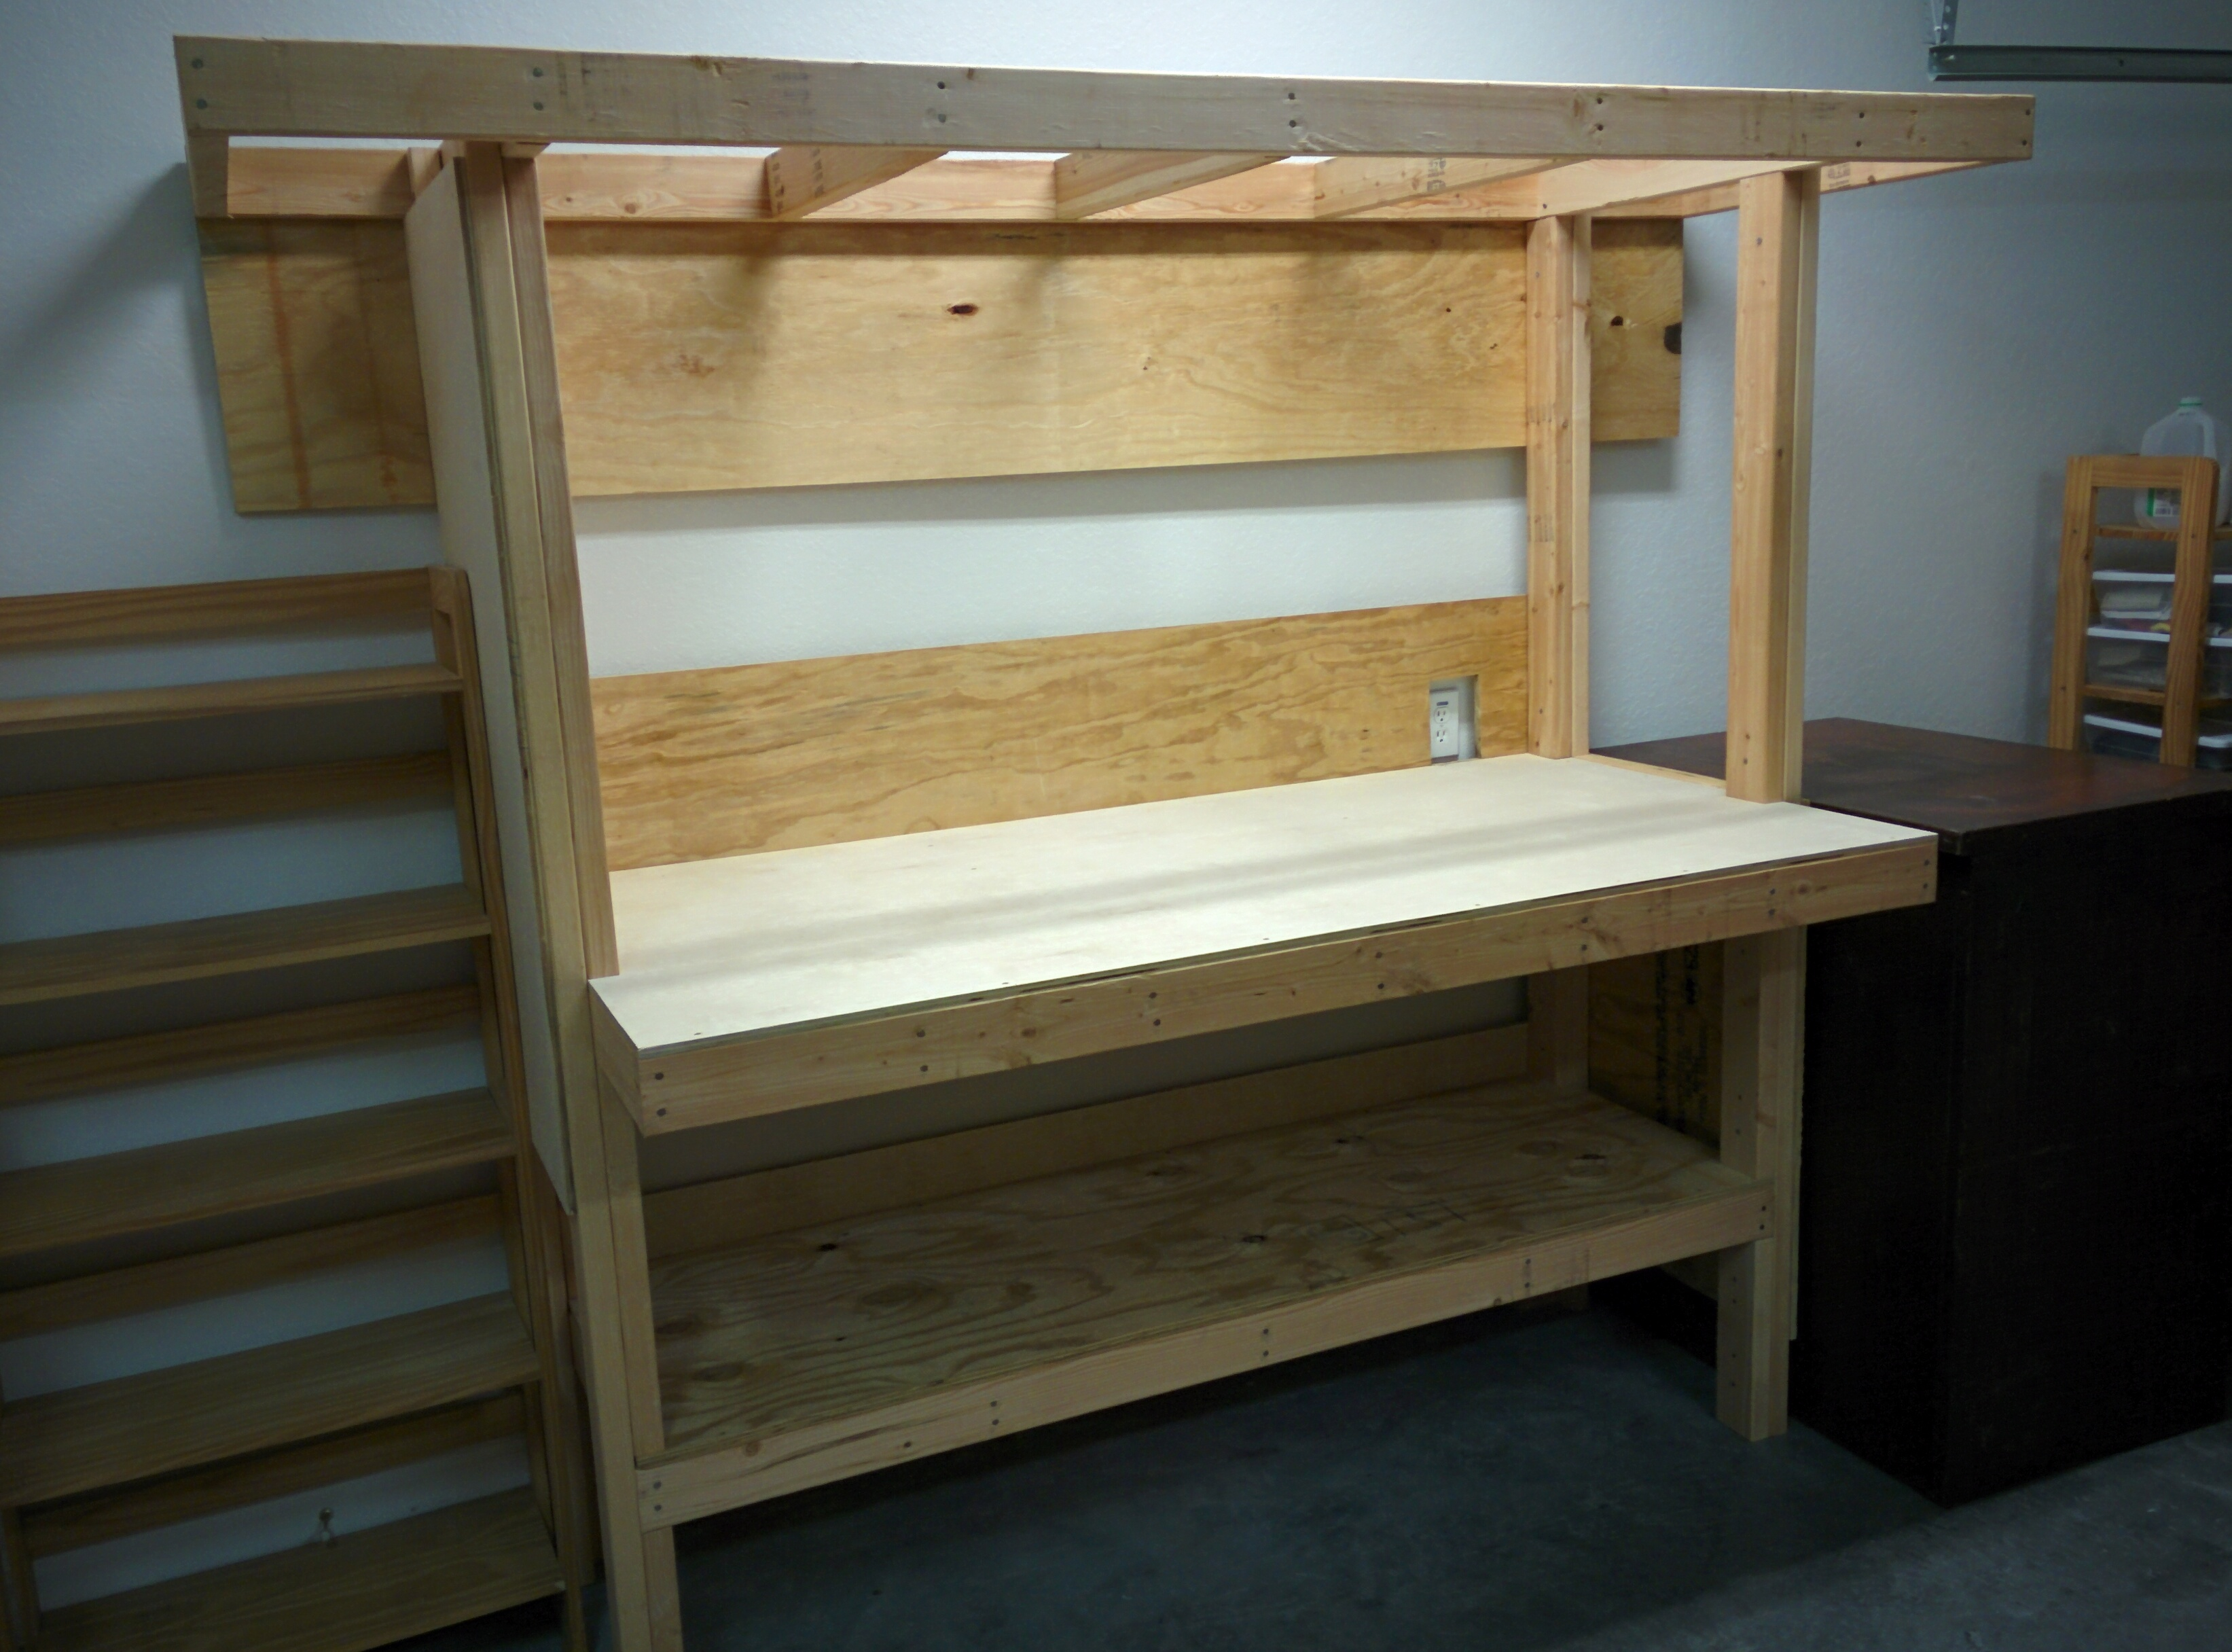 Outstanding Build A Workbench From Plywood And 24S Jays Technical Talk Creativecarmelina Interior Chair Design Creativecarmelinacom